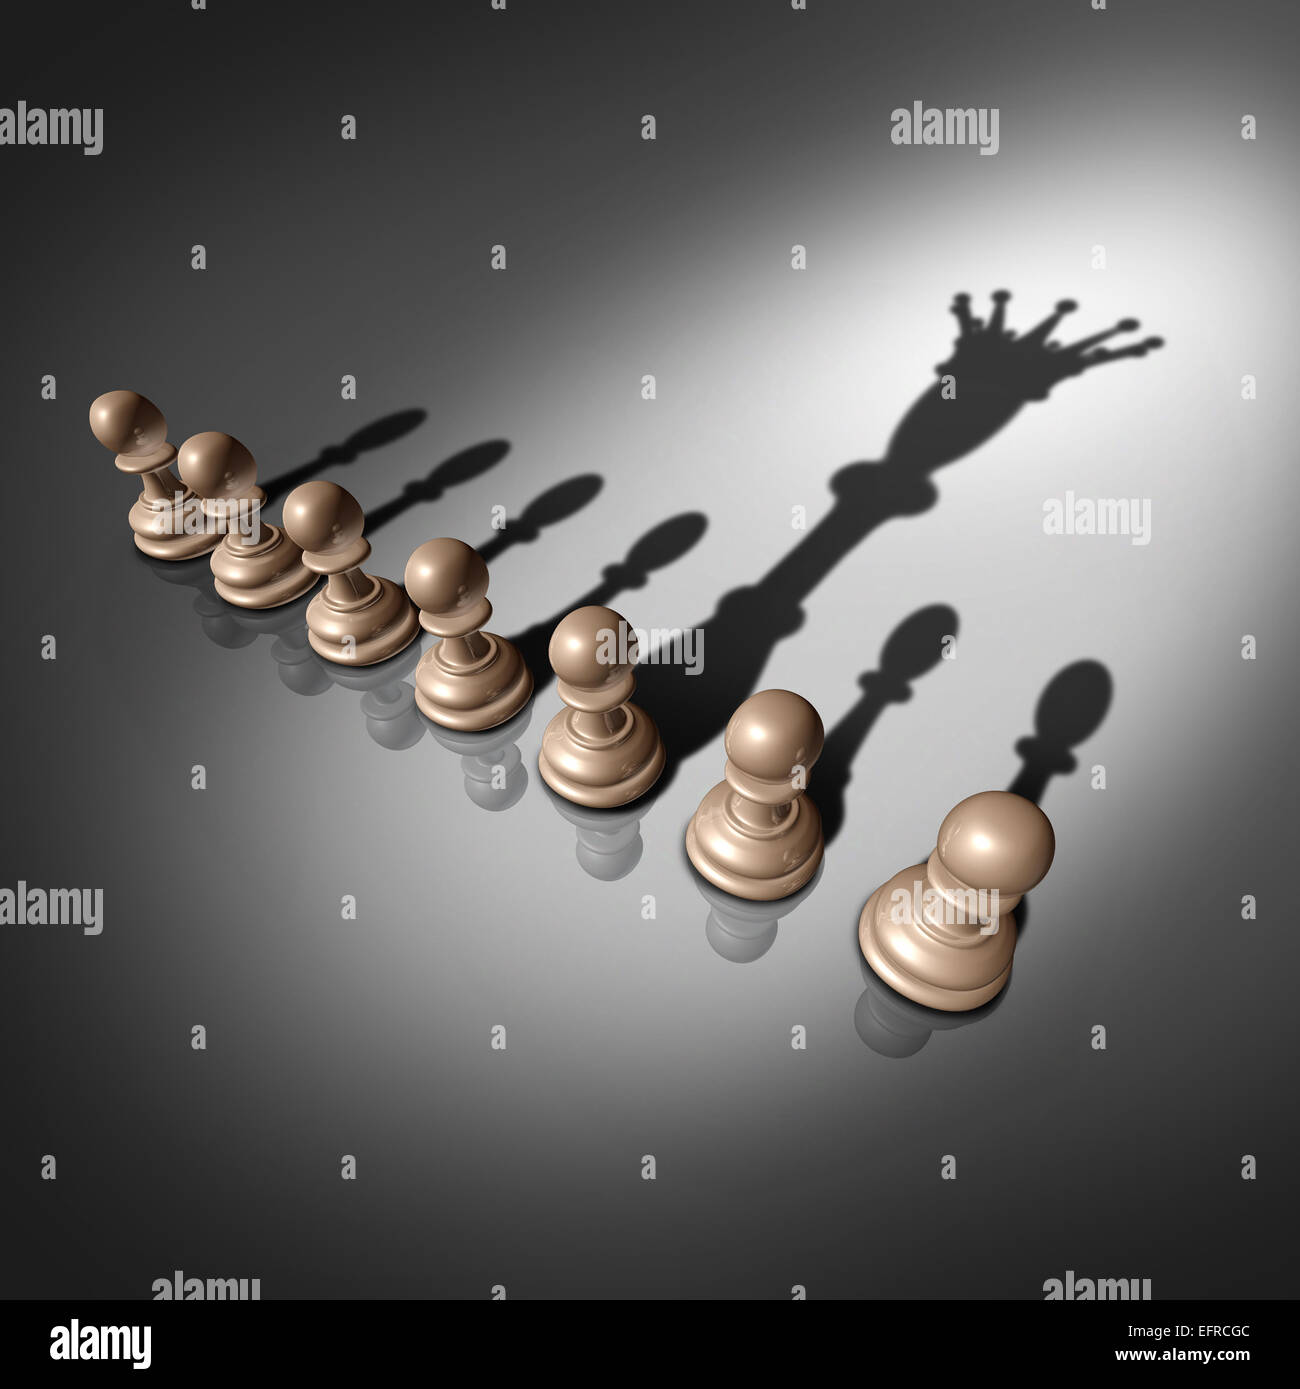 Leadership search and business recruitment concept as a group of pawn chess pieces and one individual standing out - Stock Image